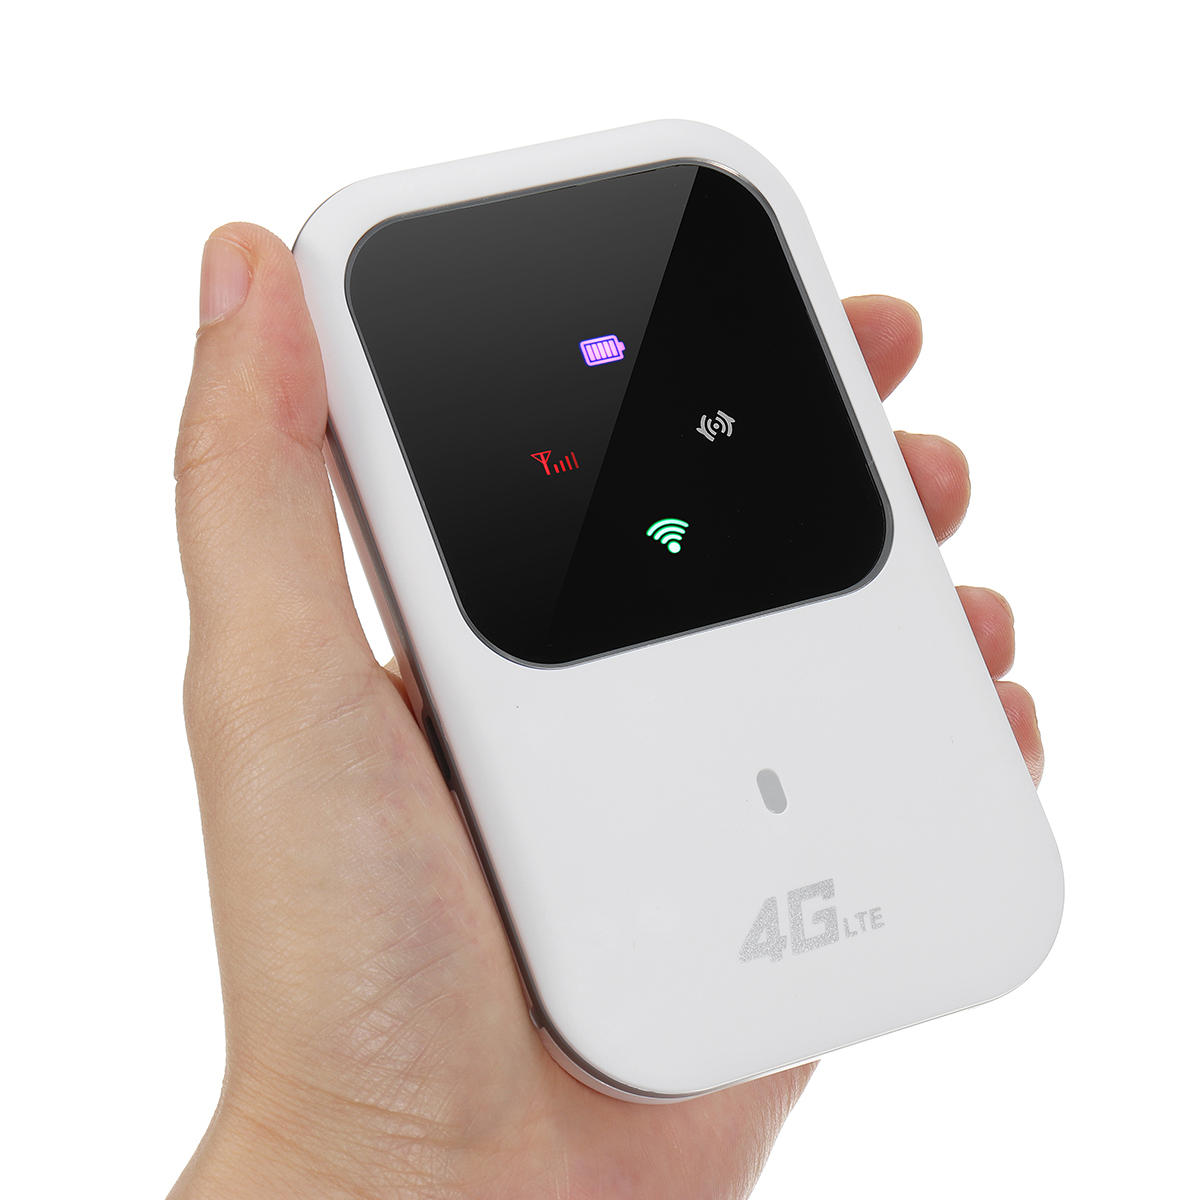 4G LTE wifi router unlocked WiFi Modem With Sim Card Slot for travel share wifi